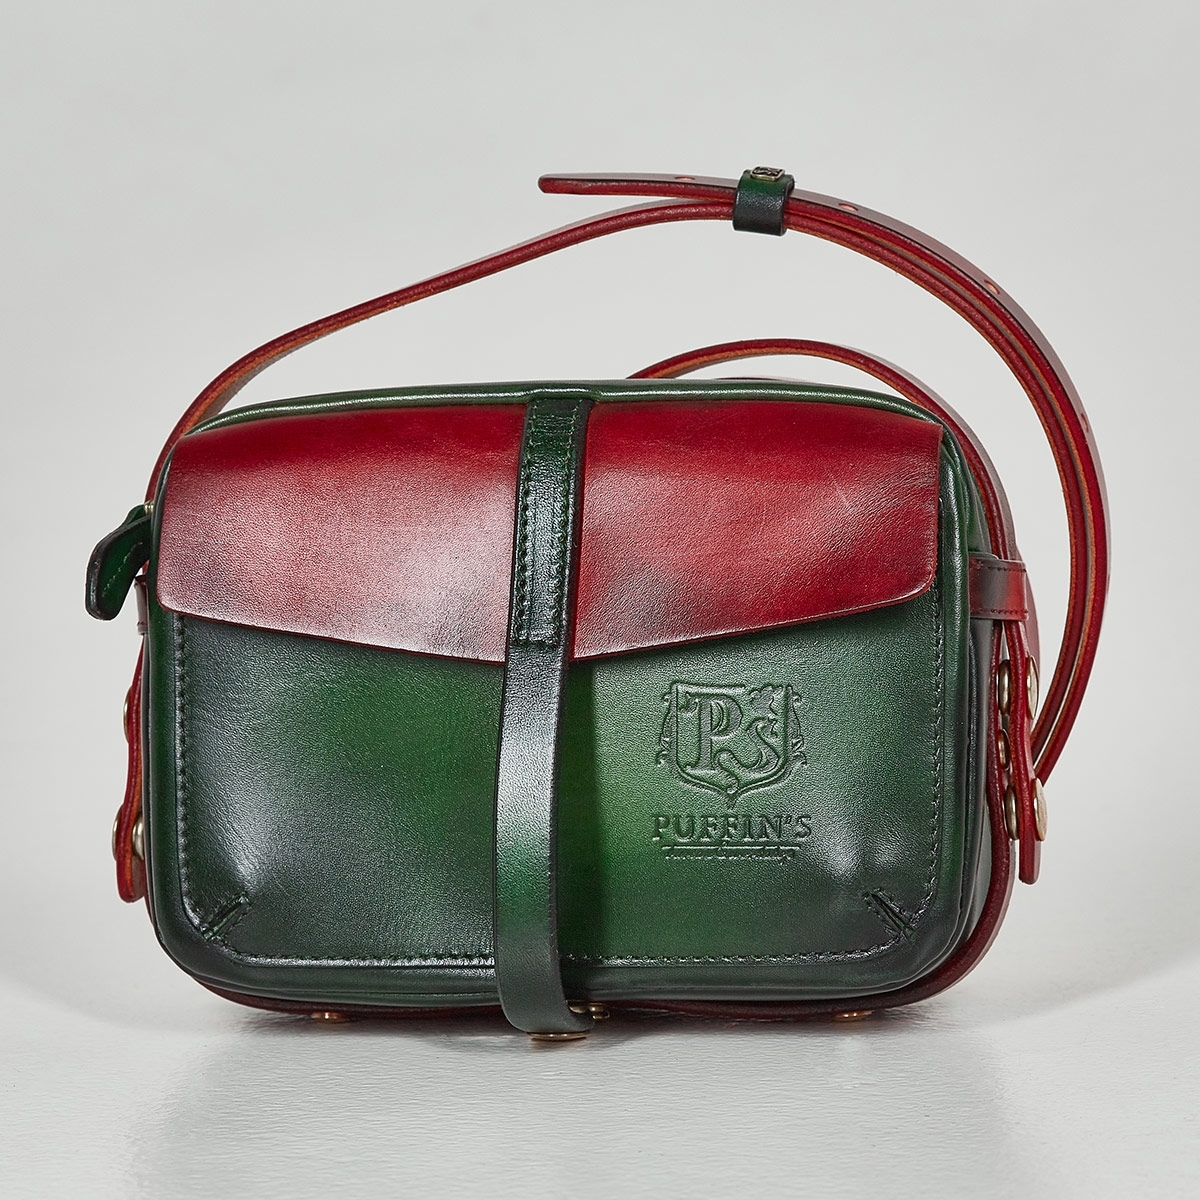 Smart crossbody bag - clutch PUFF red currant & grassy green